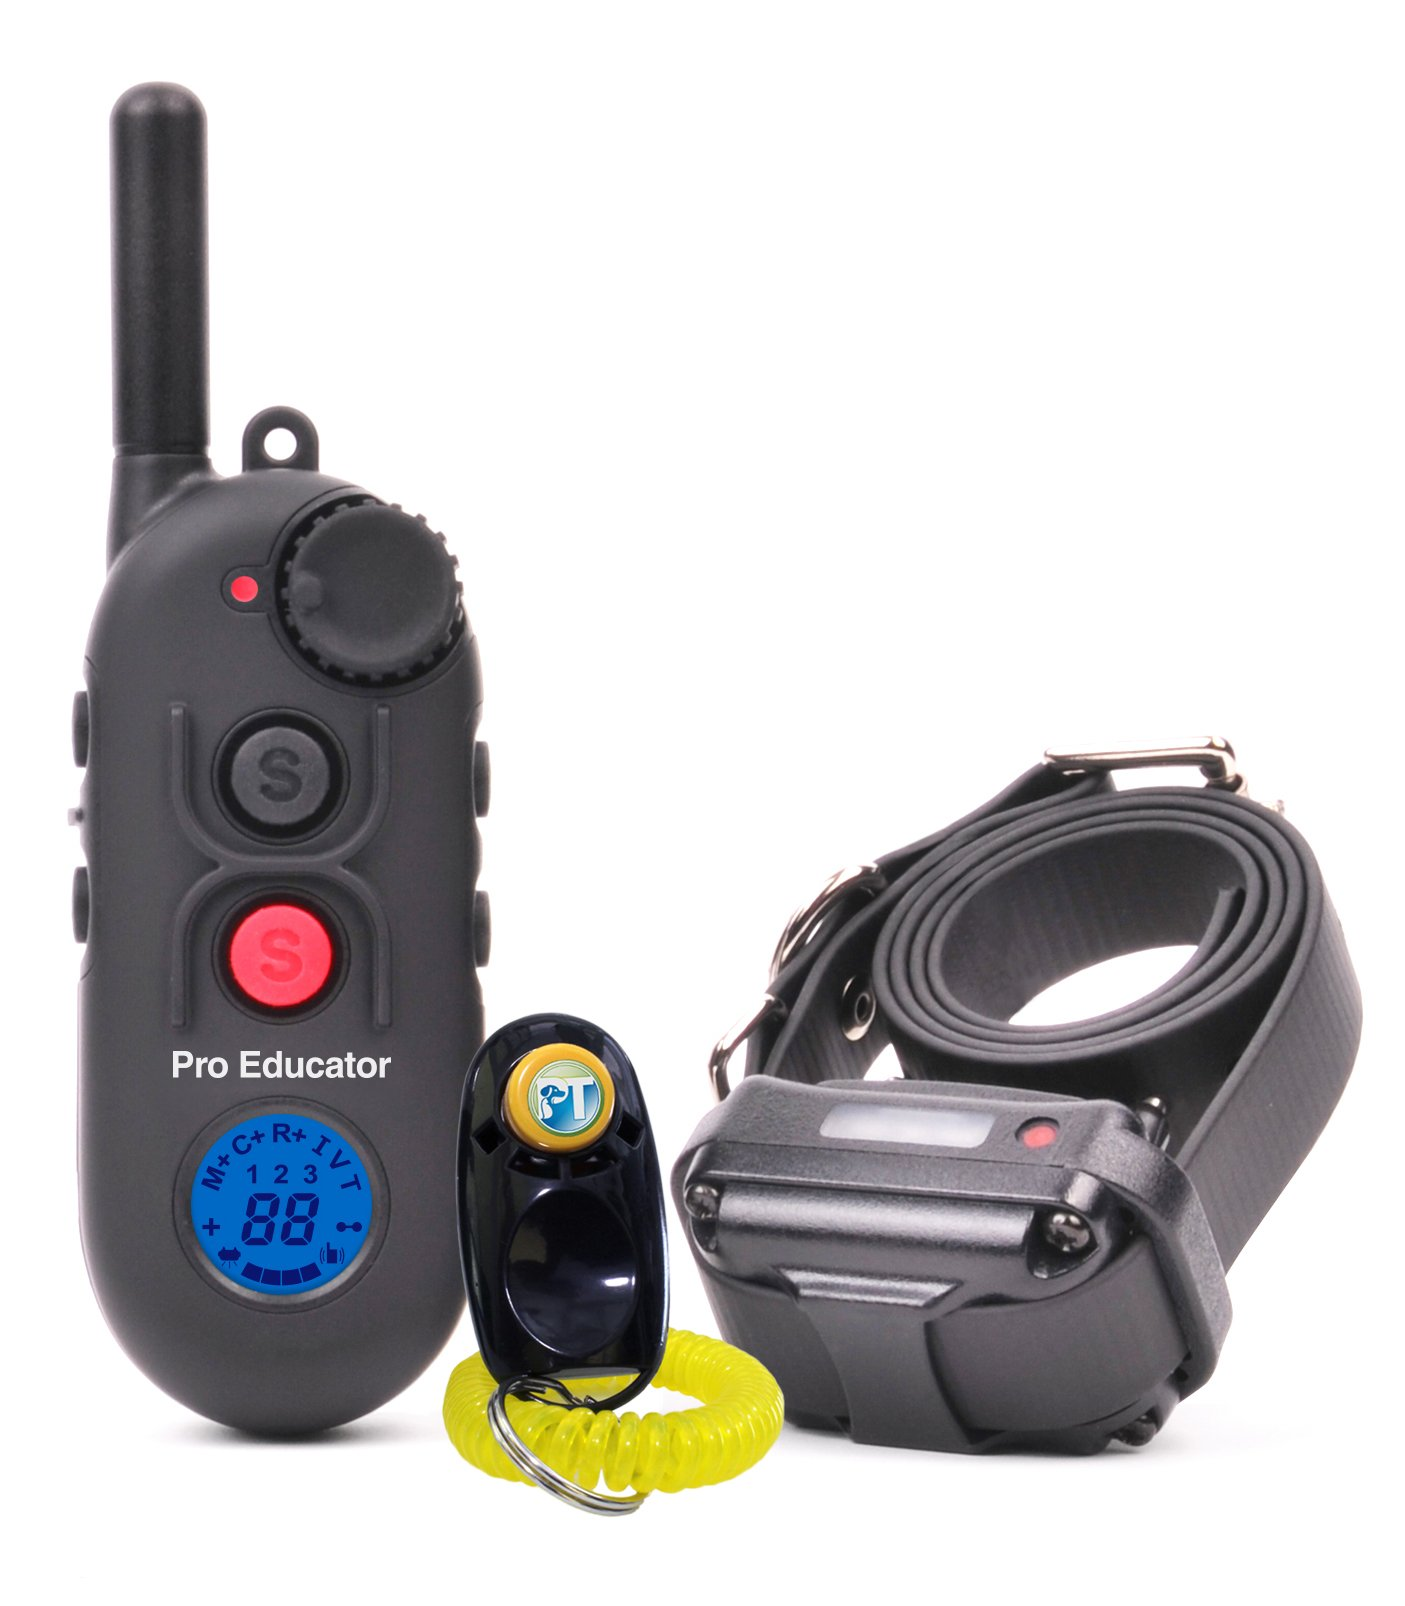 Bundle of 2 items - E-Collar - PE-900 - 1/2 Mile Remote Rechargeable Waterproof Trainer Pro Educator - Static, Vibration and Sound Stimulation collar with PetsTEK Dog Training Clicker